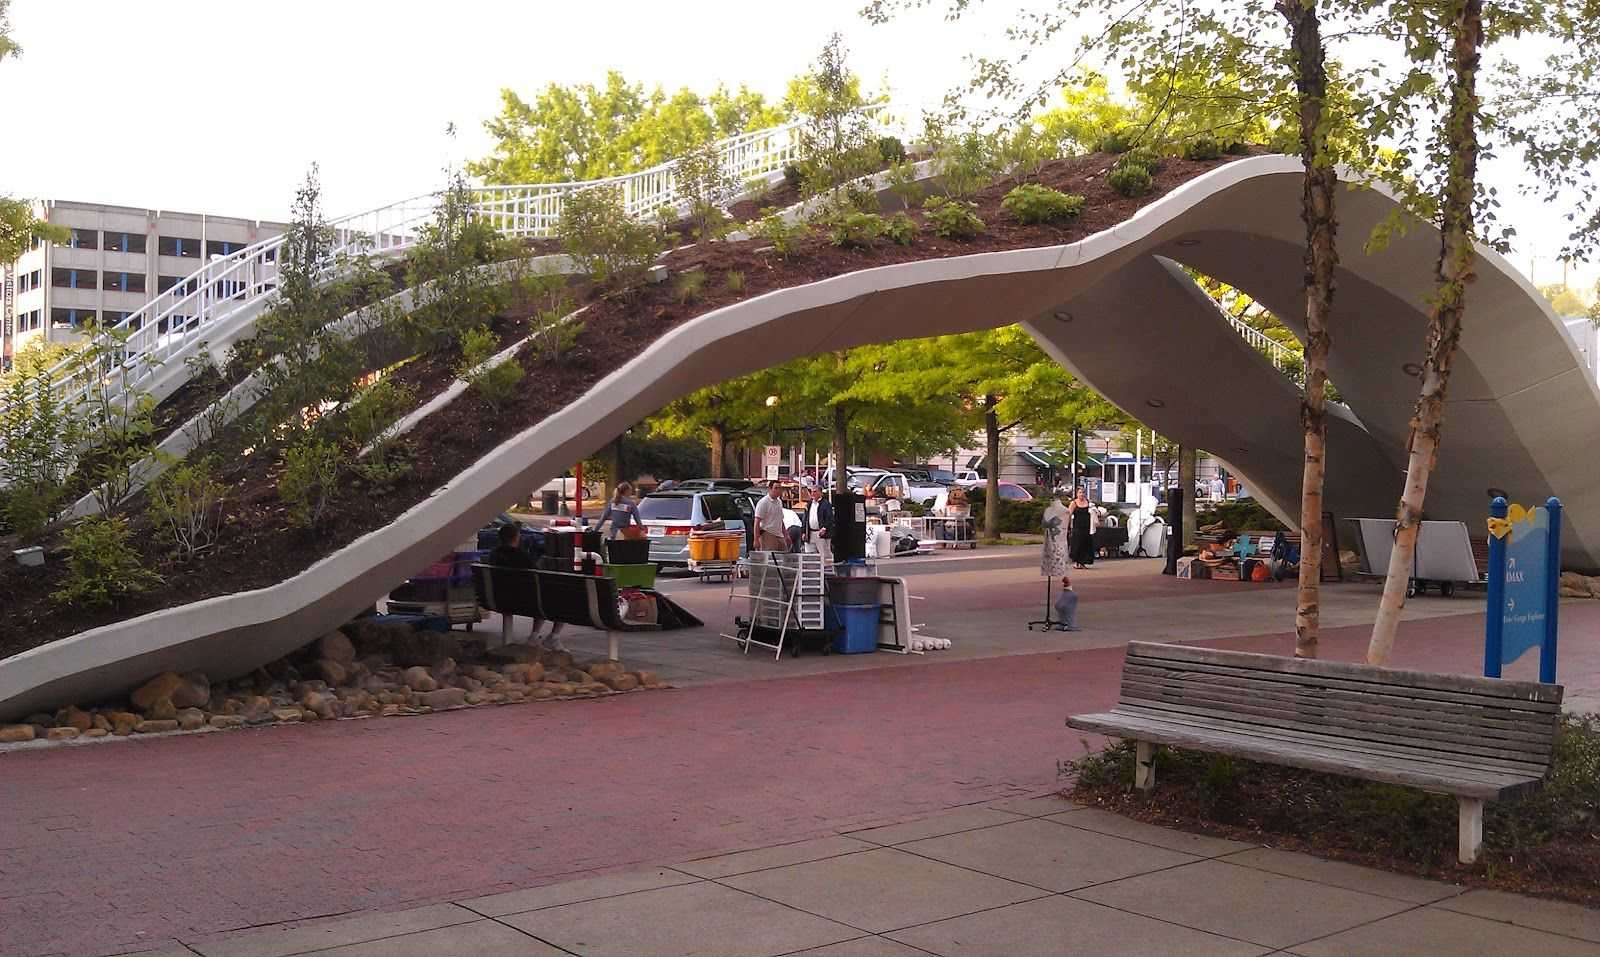 CityPlanningNews.com - Shade in the city ! Be a great outdoor space for home too !